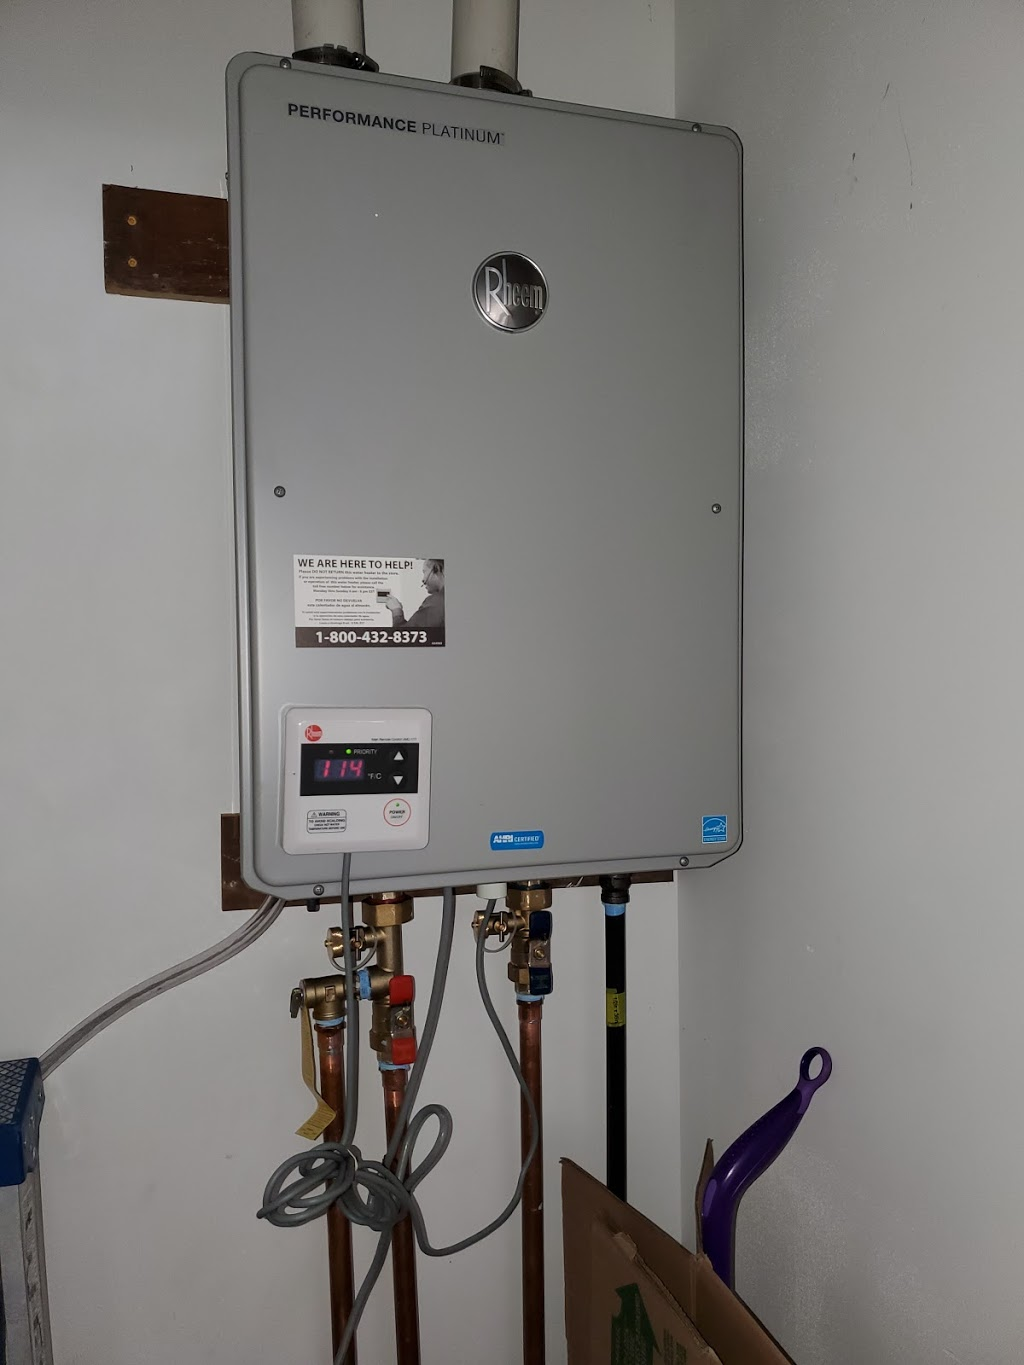 I & S General Plumbing LLC - plumber  | Photo 1 of 7 | Address: 1540 S Kilbourn Ave, Chicago, IL 60623, USA | Phone: (312) 763-0346